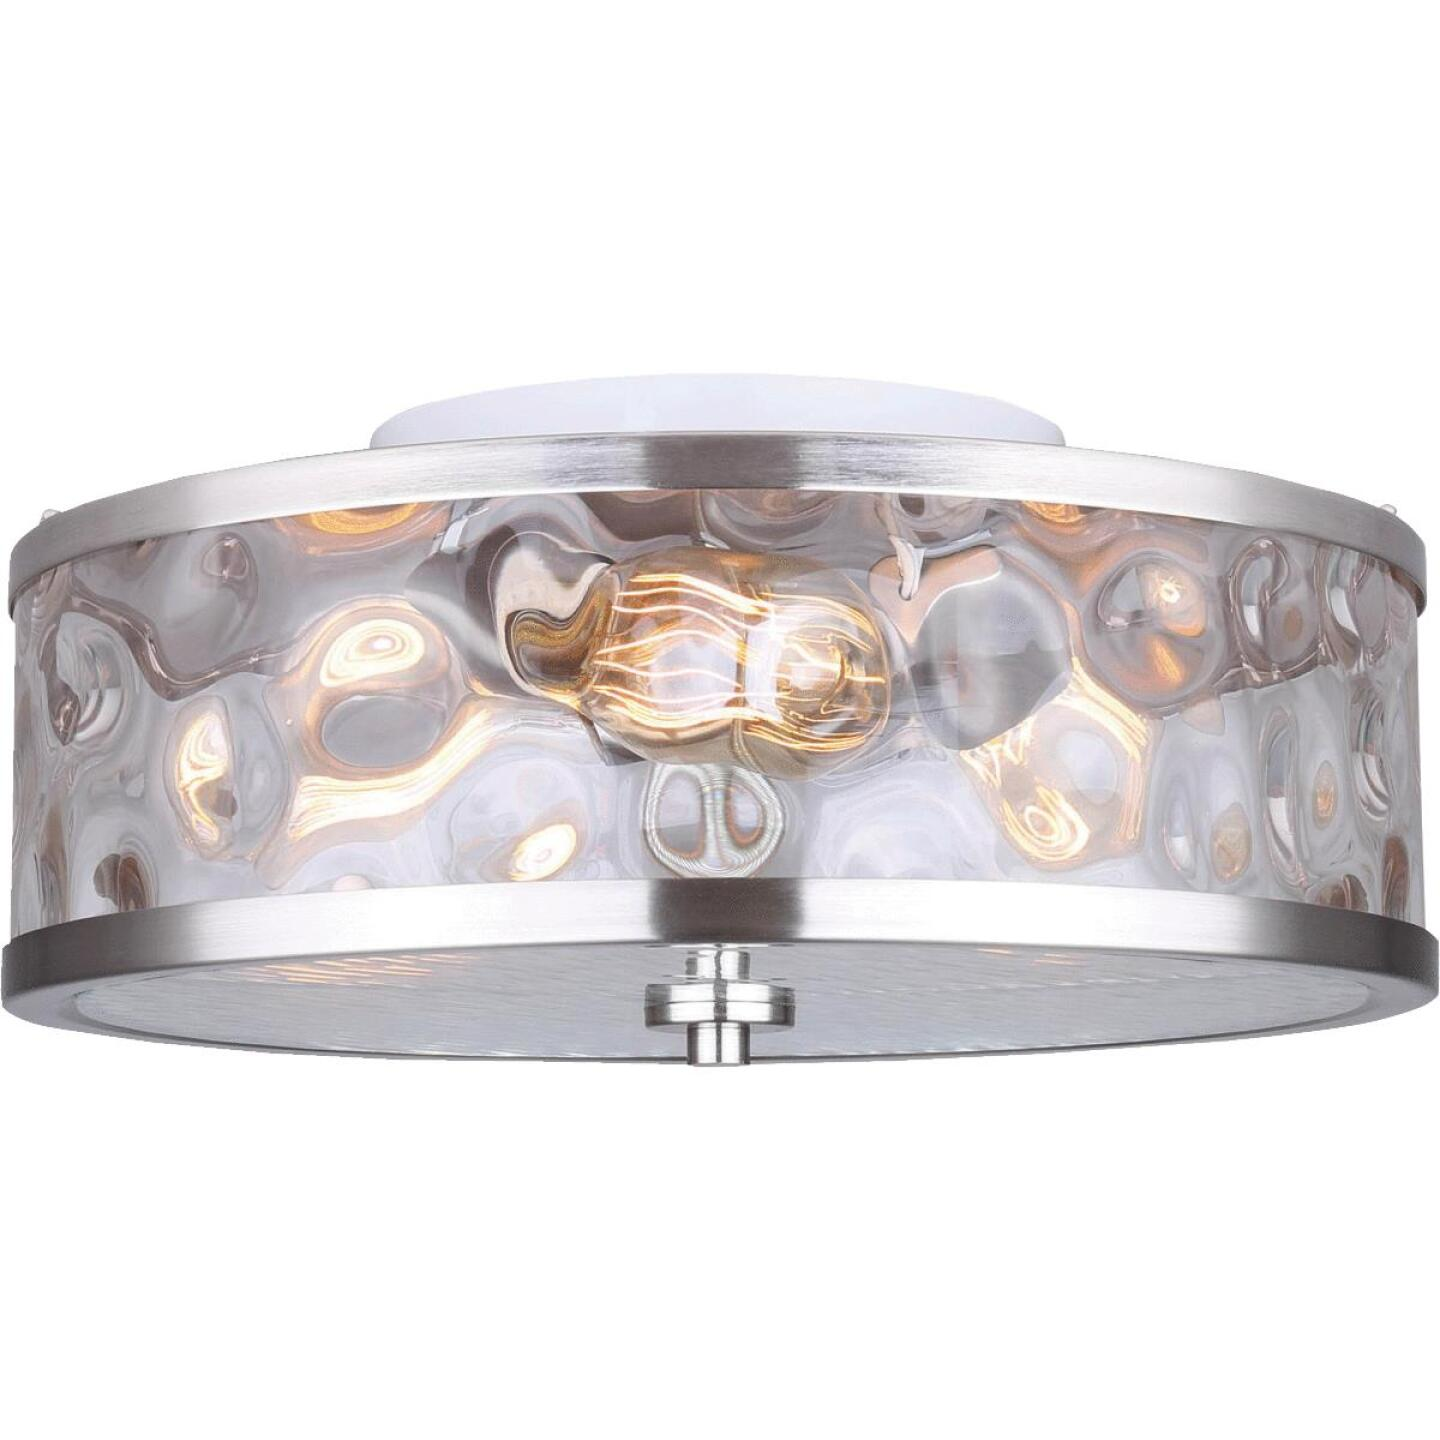 Home Impressions Cala 16 In. Brushed Nickel Incandescent Flush Mount Light Fixture Image 1